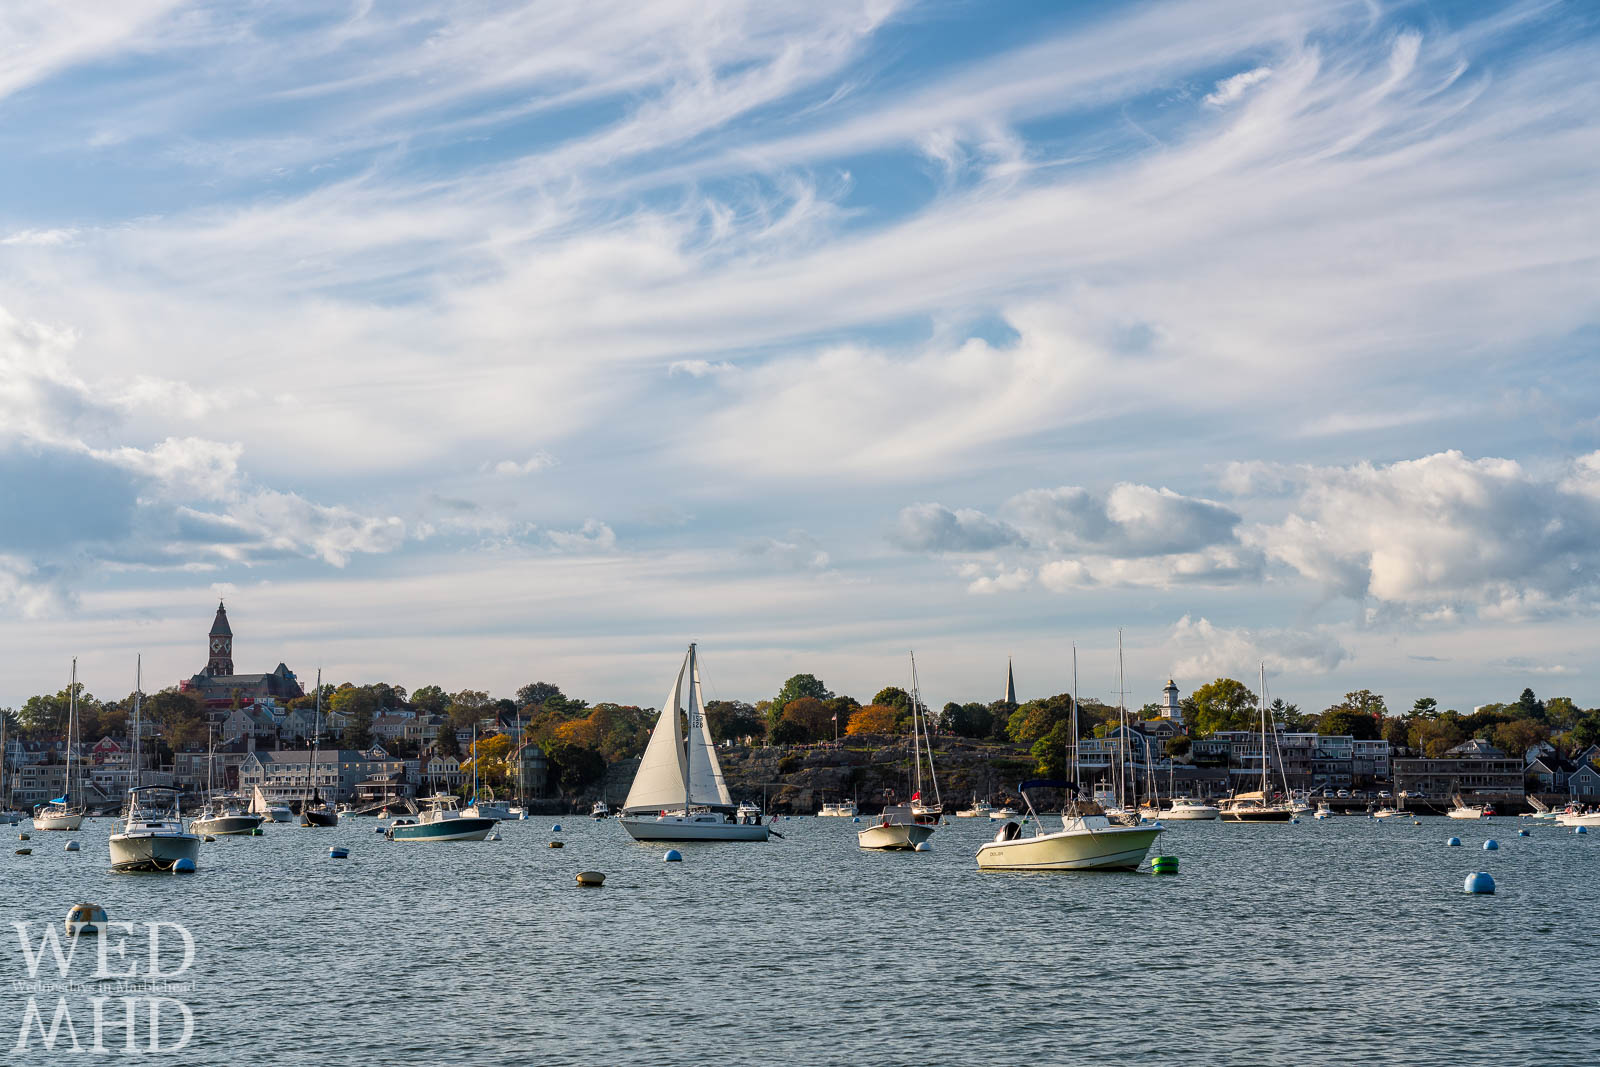 A boats heads back into Marblehead Harbor after an October Sail with crisp air and a strong breeze